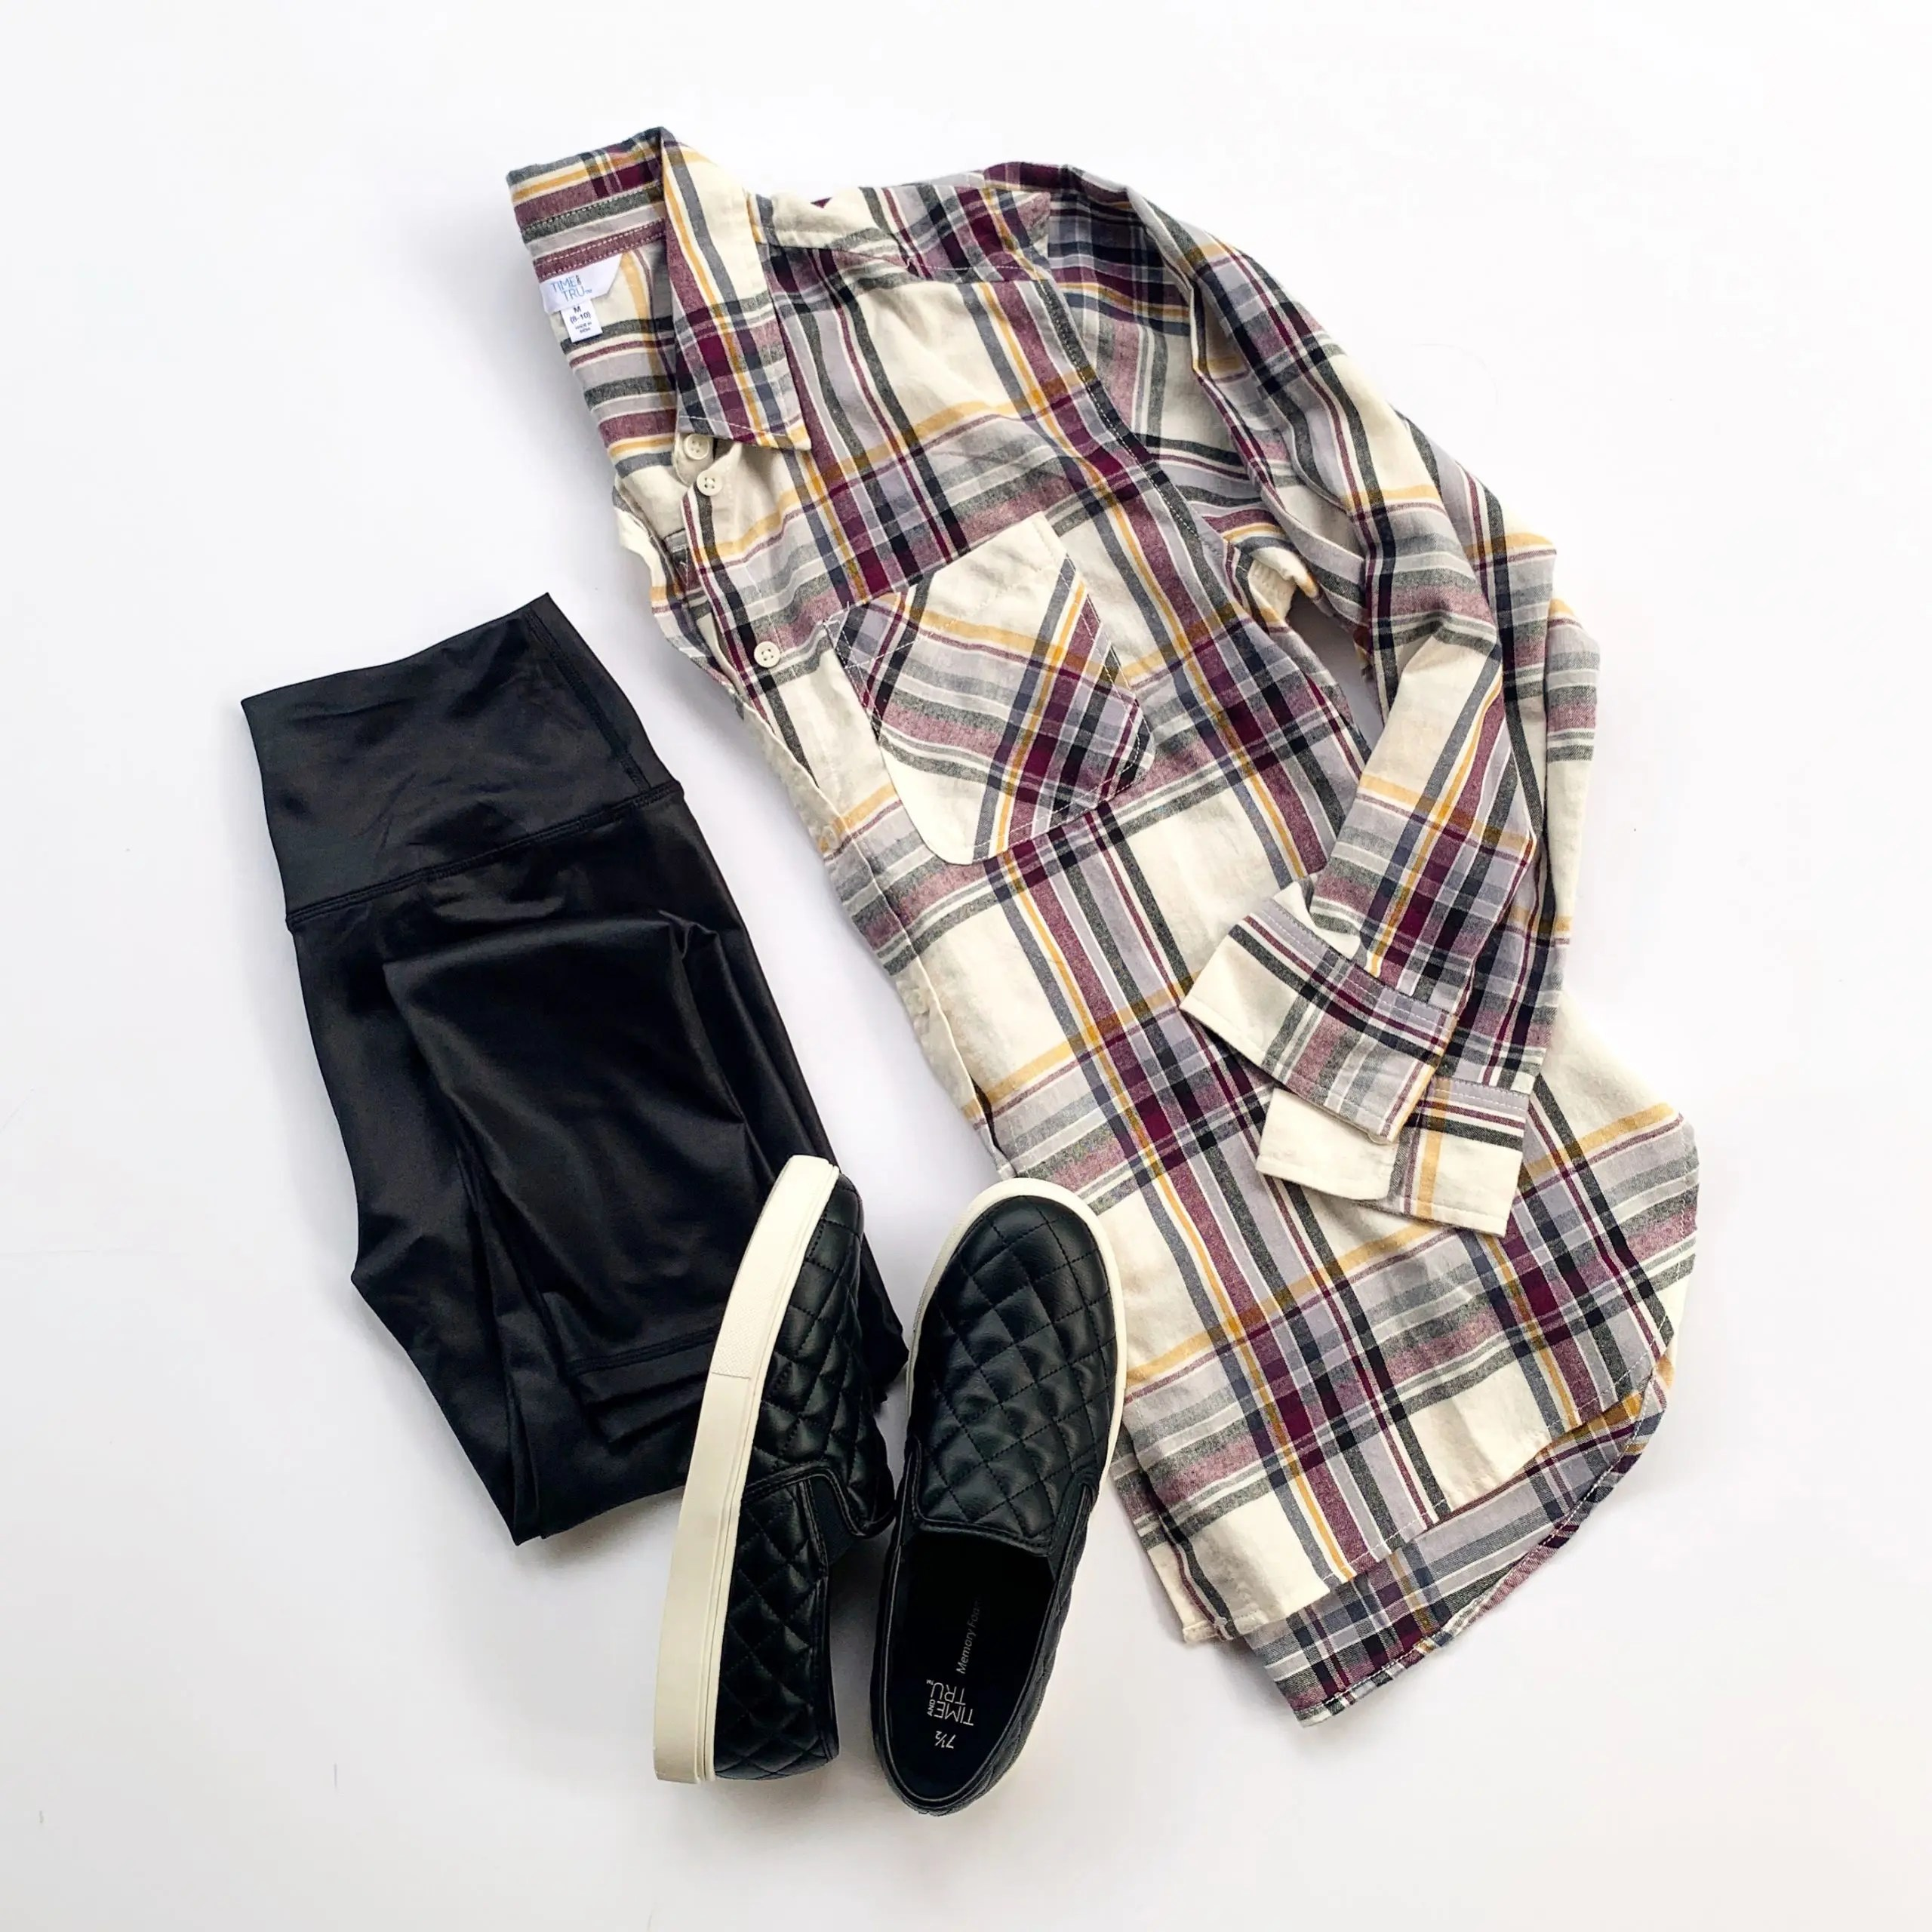 Scorpio Sole Faux Leather Leggings, Time and Tru Plaid Shirt and Quilted Sneakers